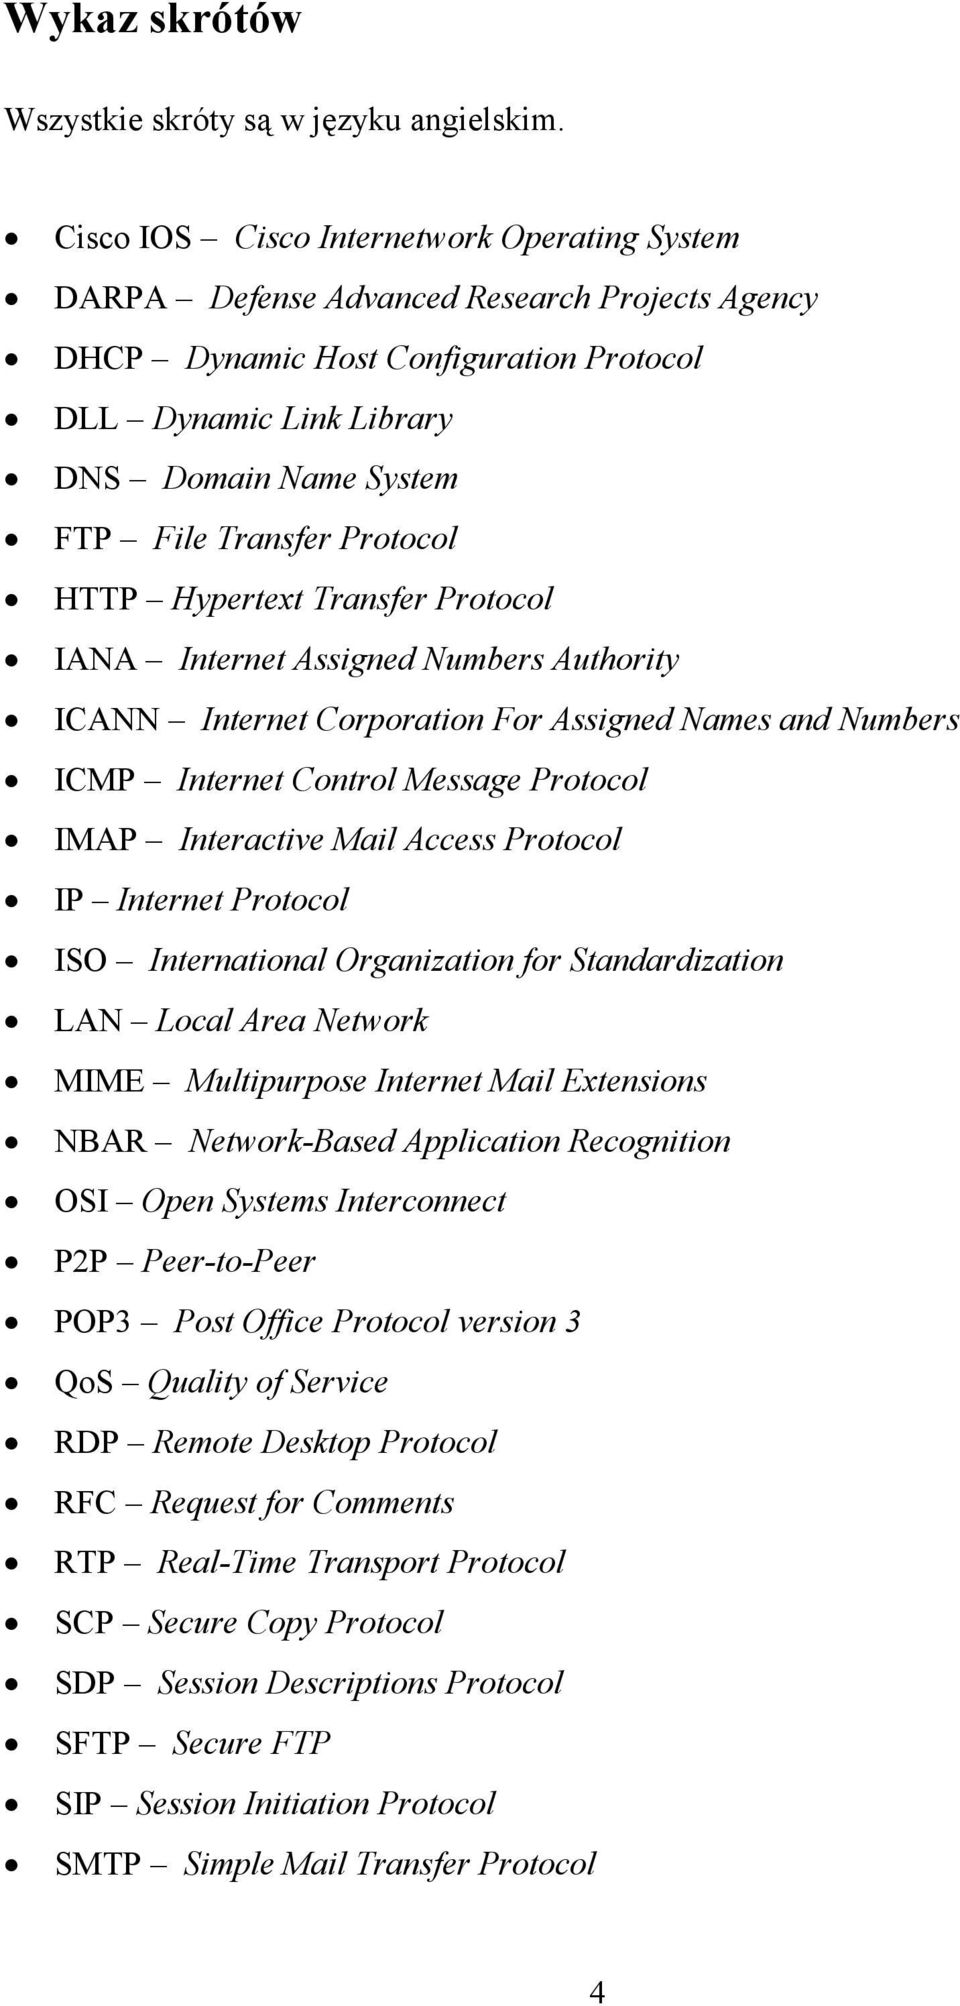 Transfer Protocol HTTP Hypertext Transfer Protocol IANA Internet Assigned Numbers Authority ICANN Internet Corporation For Assigned Names and Numbers ICMP Internet Control Message Protocol IMAP